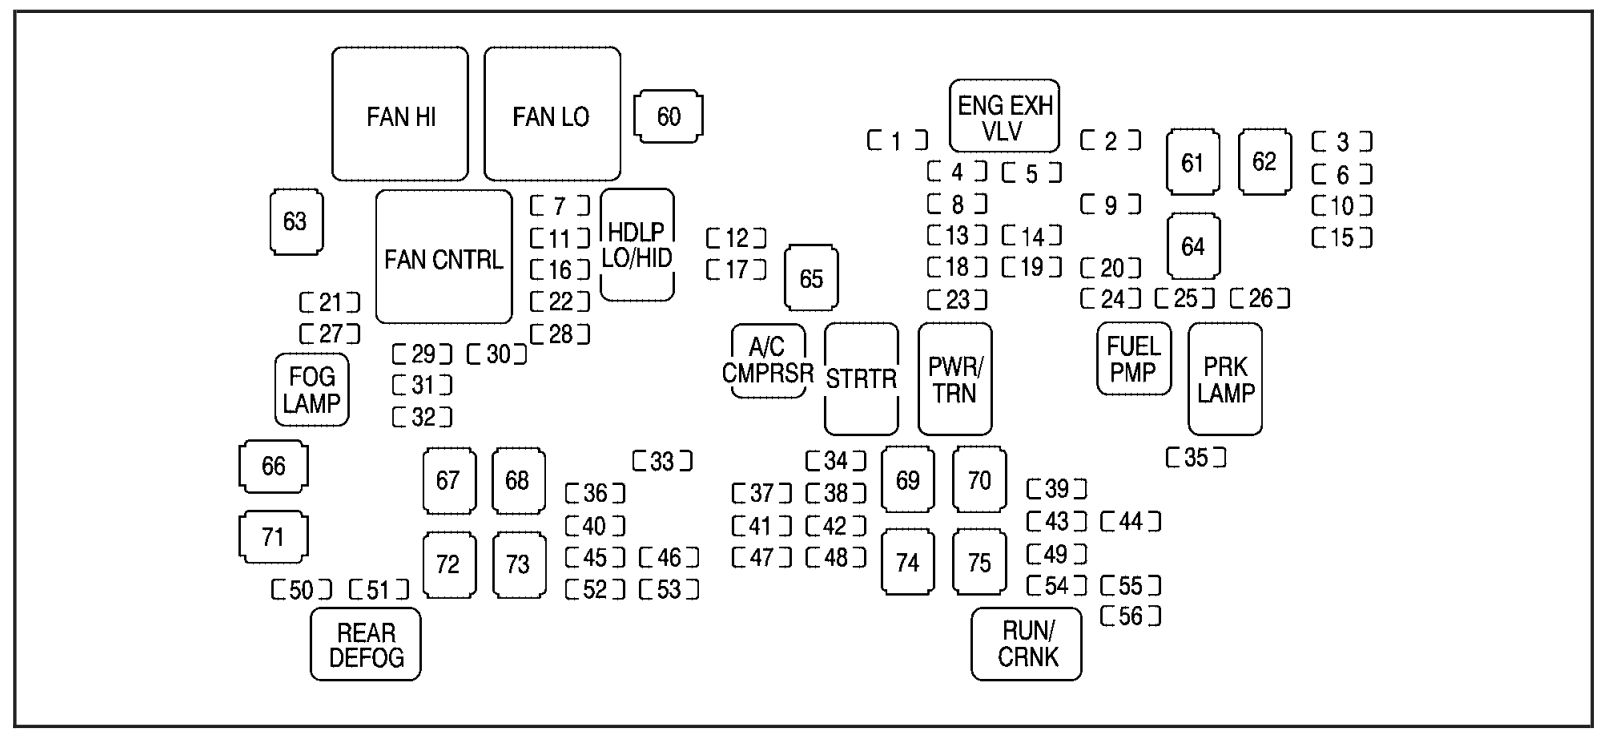 hight resolution of 2007 chevy fuse box wiring diagram dat 2007 chevy uplander fuse box location